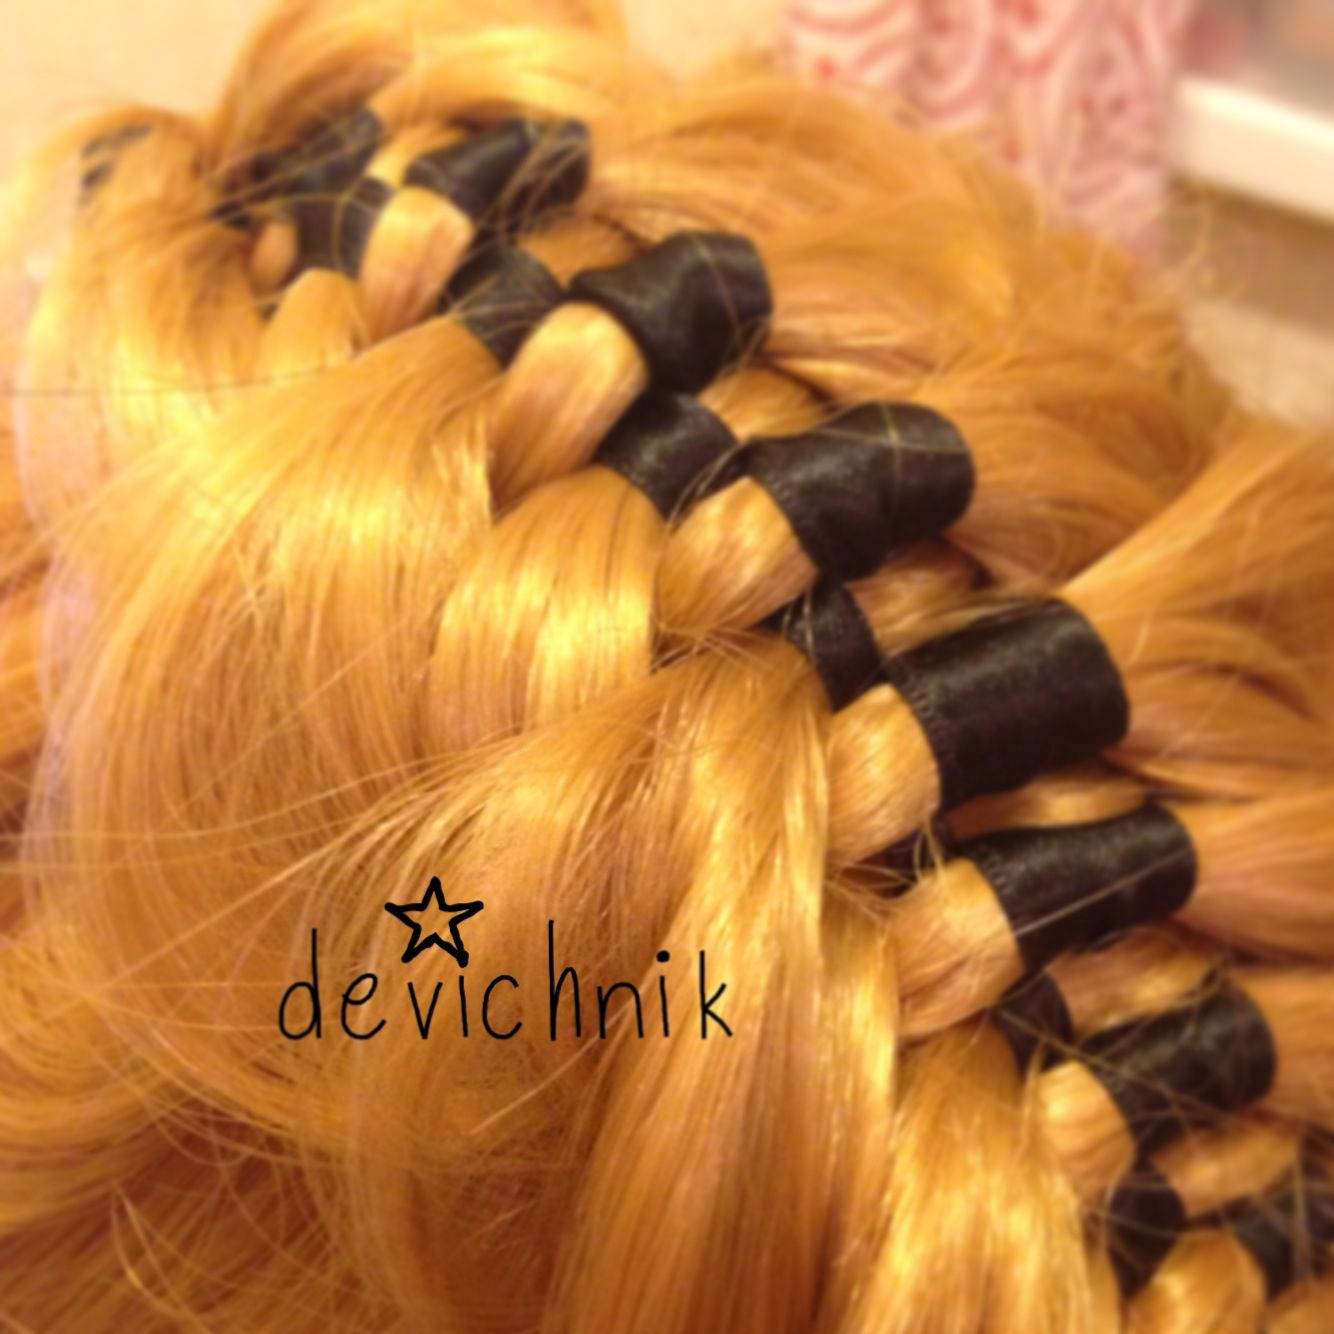 Check up our Instagram account @devichnik for more  #devichnik #super  #love #moscow #princess #queen #venus #henparty #love #me #cute #girl #beautiful #happy #amaizing #fashion #style #pretty #nice #look #braid #braiding #strand #hair #style #hairstyle #handmade #dyi